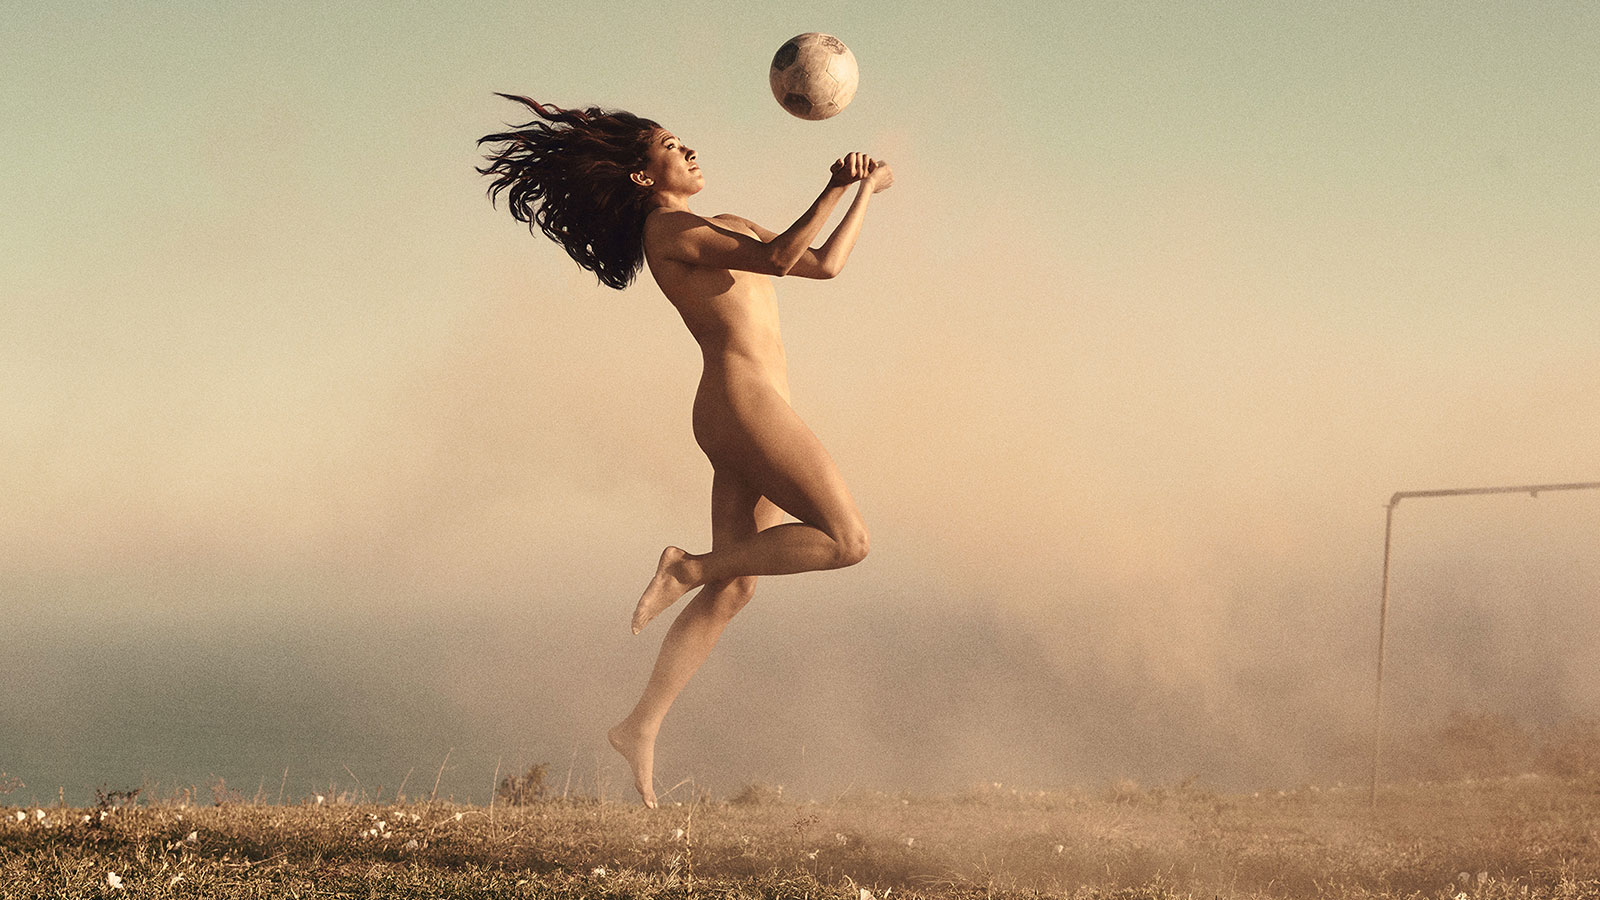 Christen Press, Soccer, featured in the Body Issue 2016: Fully Exposed on ESPN the Magazine